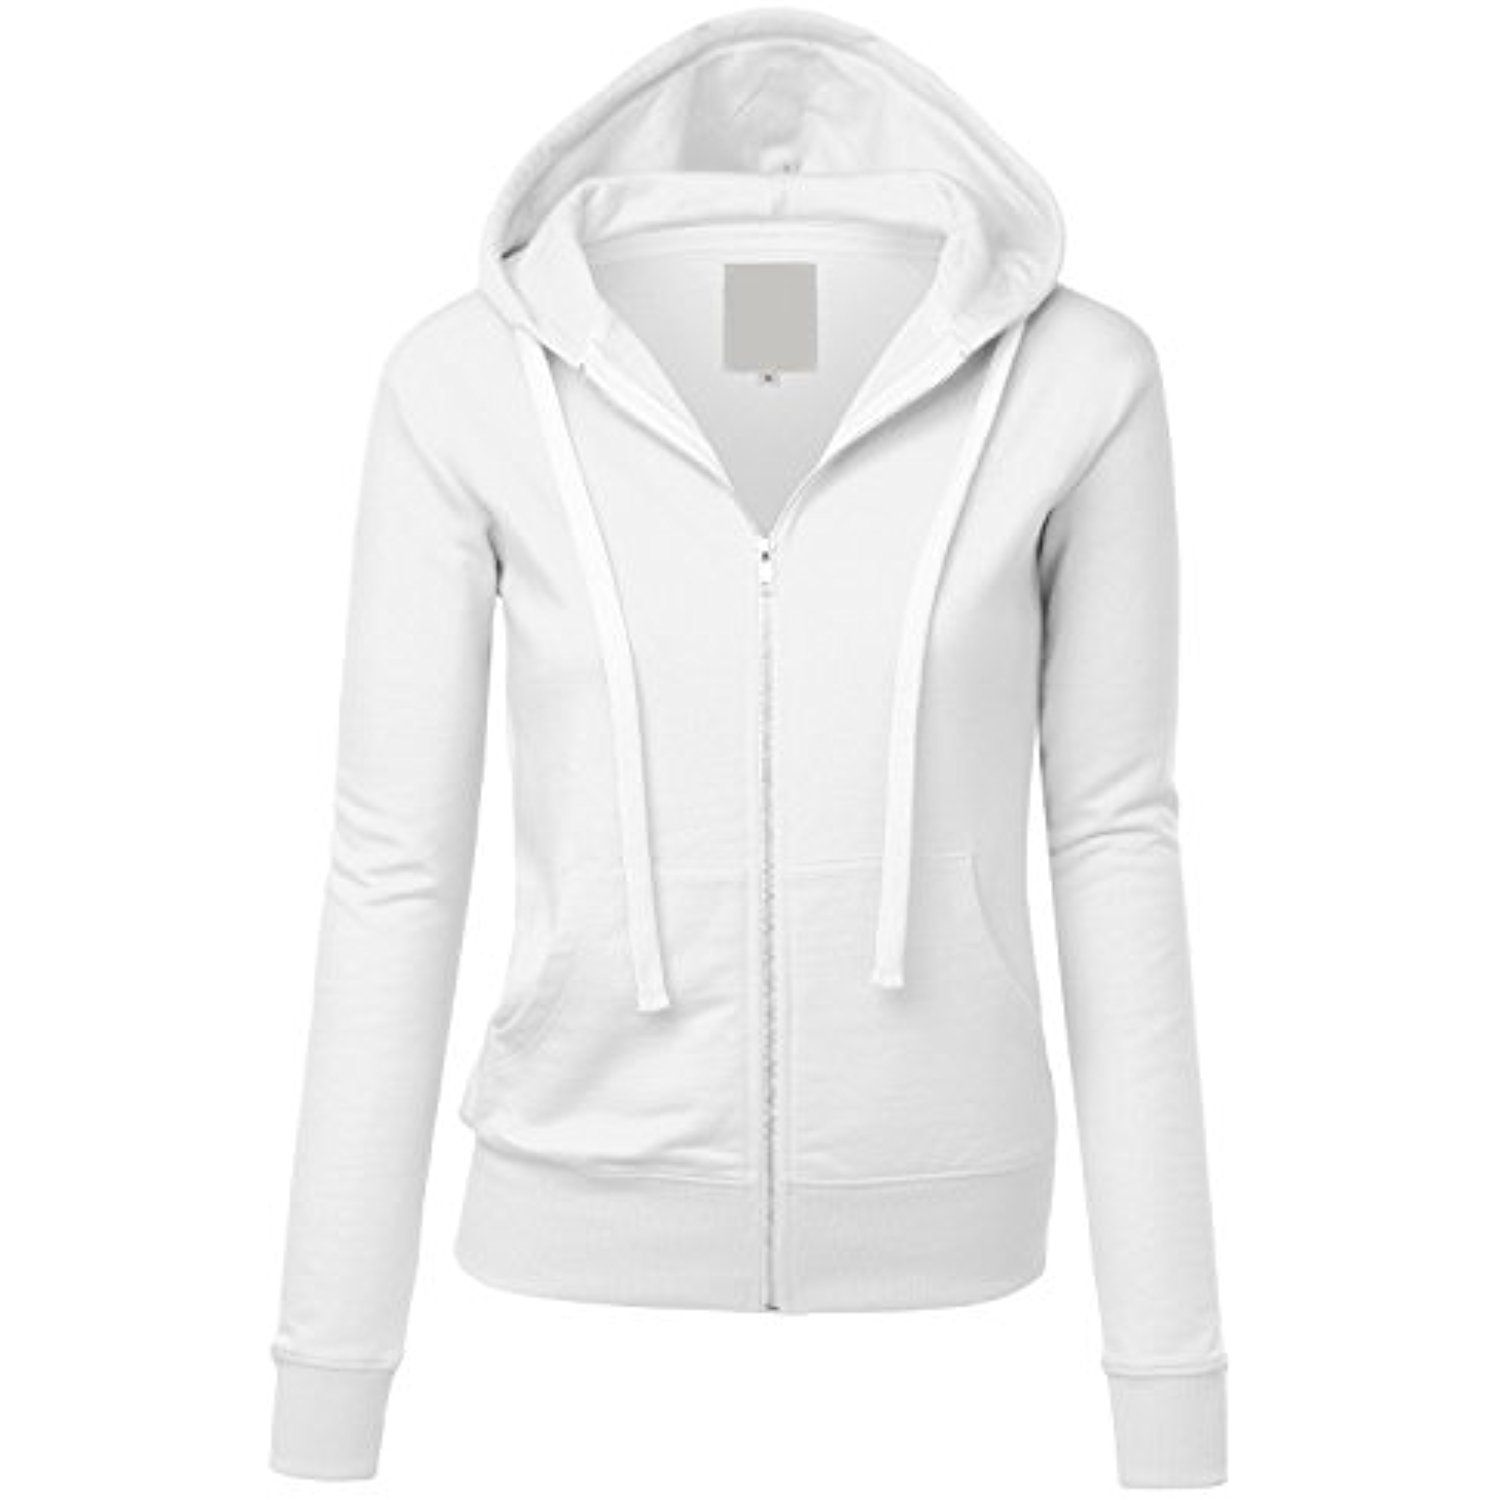 Womens Active Soft Zip Up Fleece Hoodie Sweater Jacket S 3xl You Can Find Out More Details At The Link Of The Image Ropa Fiesta Mujer Ropa Ropa De Moda [ 1500 x 1500 Pixel ]